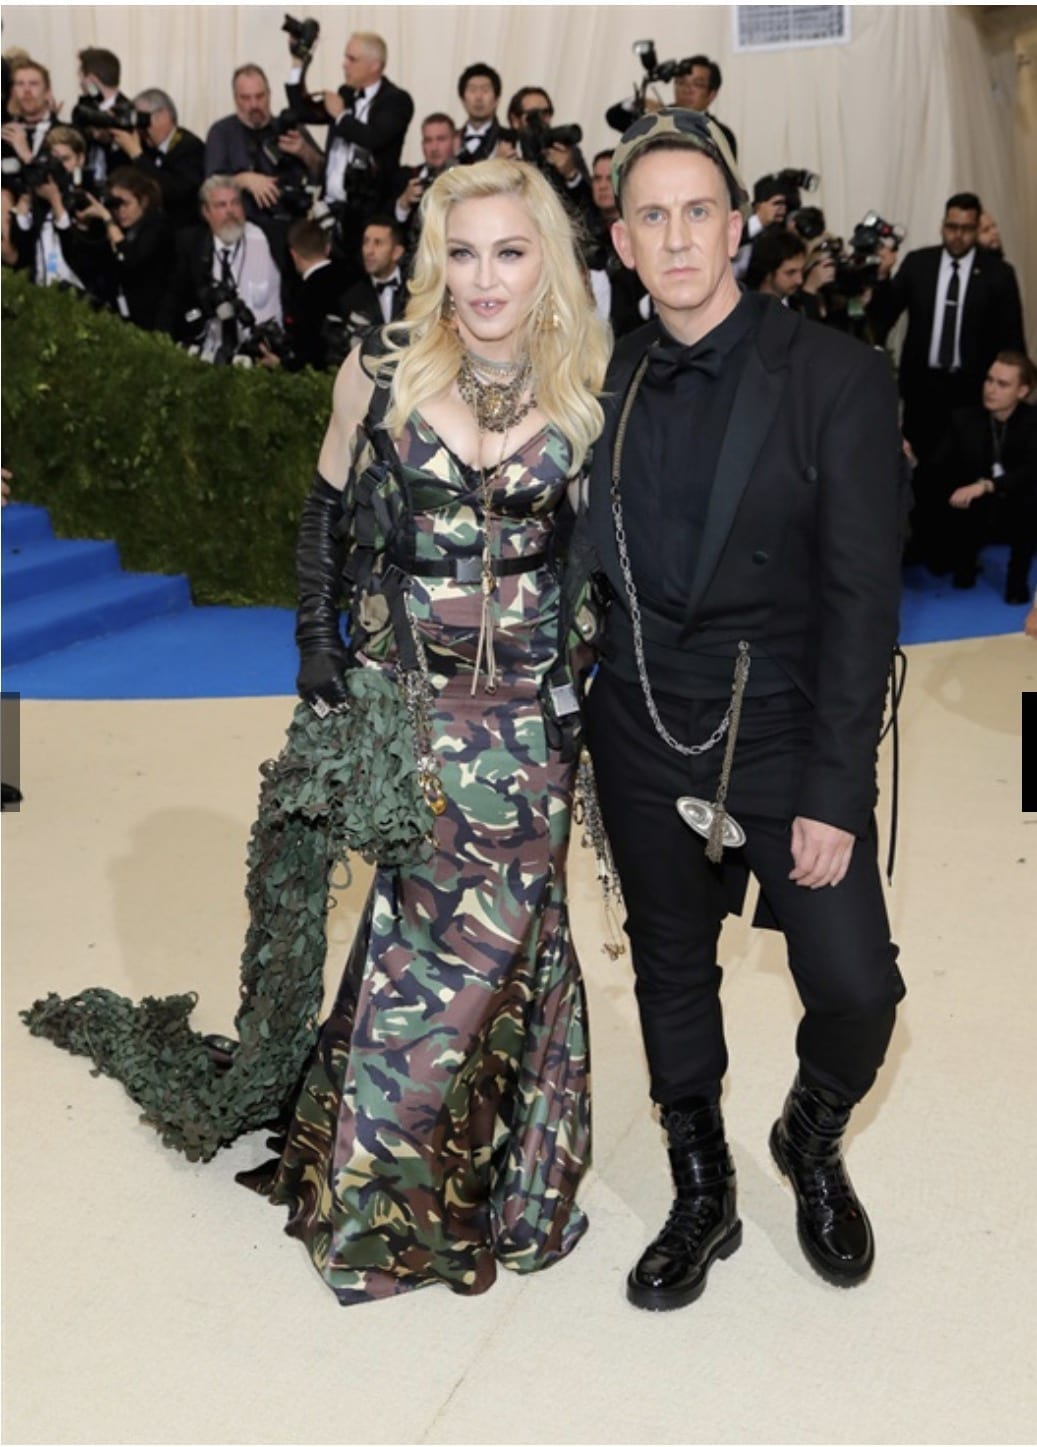 madonna moschino met gala 2017, Met Gala 2017, bella hadid met gala 2017, theladycracy.it, elisa bellino, fashion blog, fashion blog 2017, fashion blogger 2017, look da red carpet, come si vestono le star sui red carpet